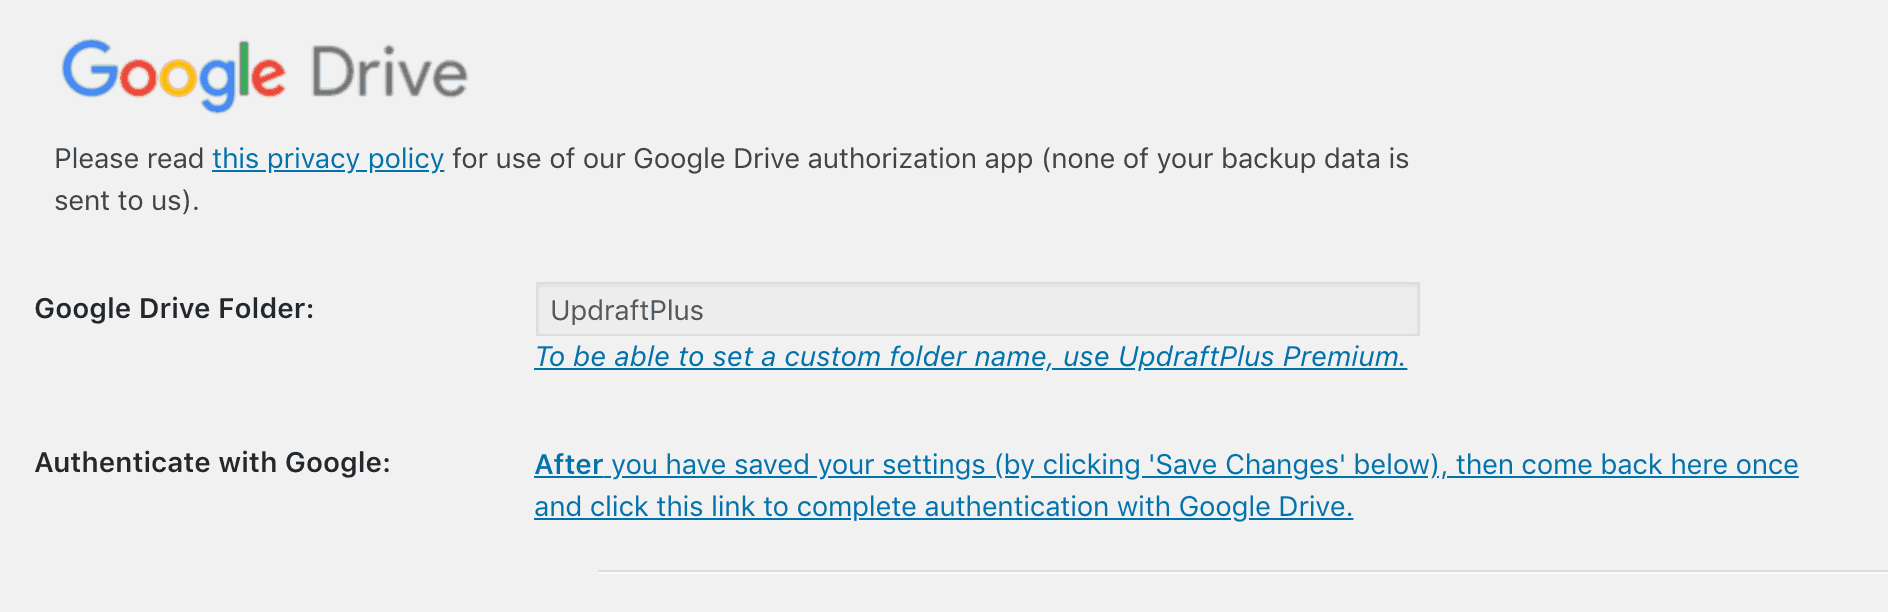 Settings for connecting to Google Drive.